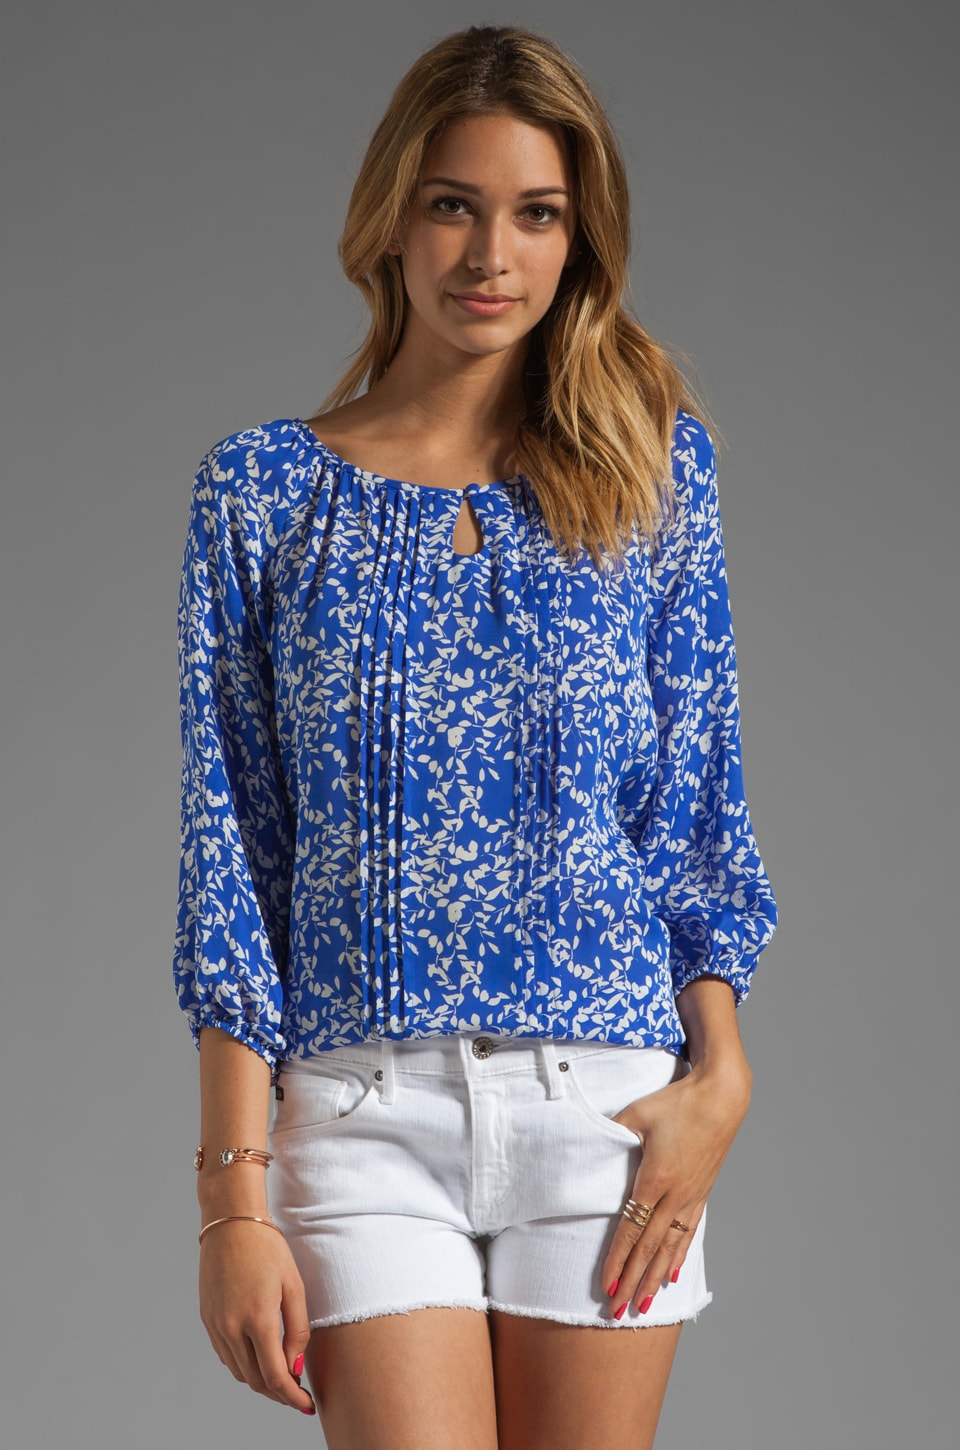 Shoshanna Bailey Blouse in Bluebell/Ivory